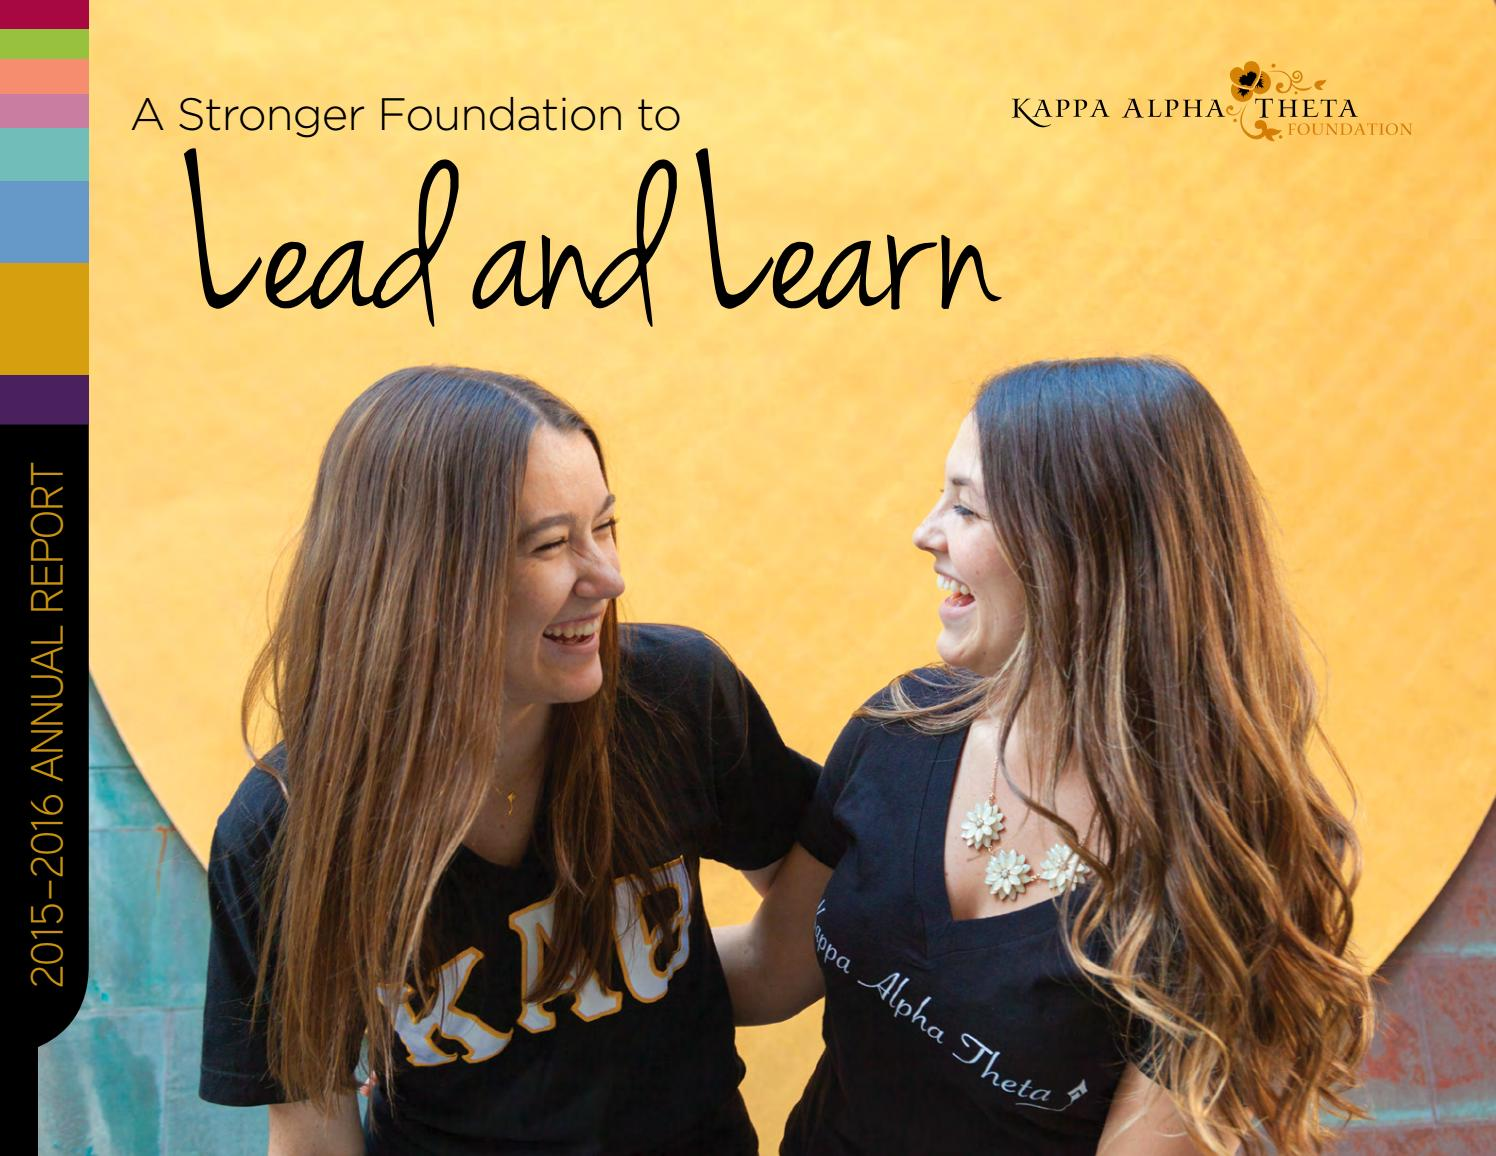 ea62f349f3979e 2015-2016 Theta Foundation Annual Report by Kappa Alpha Theta Foundation -  issuu